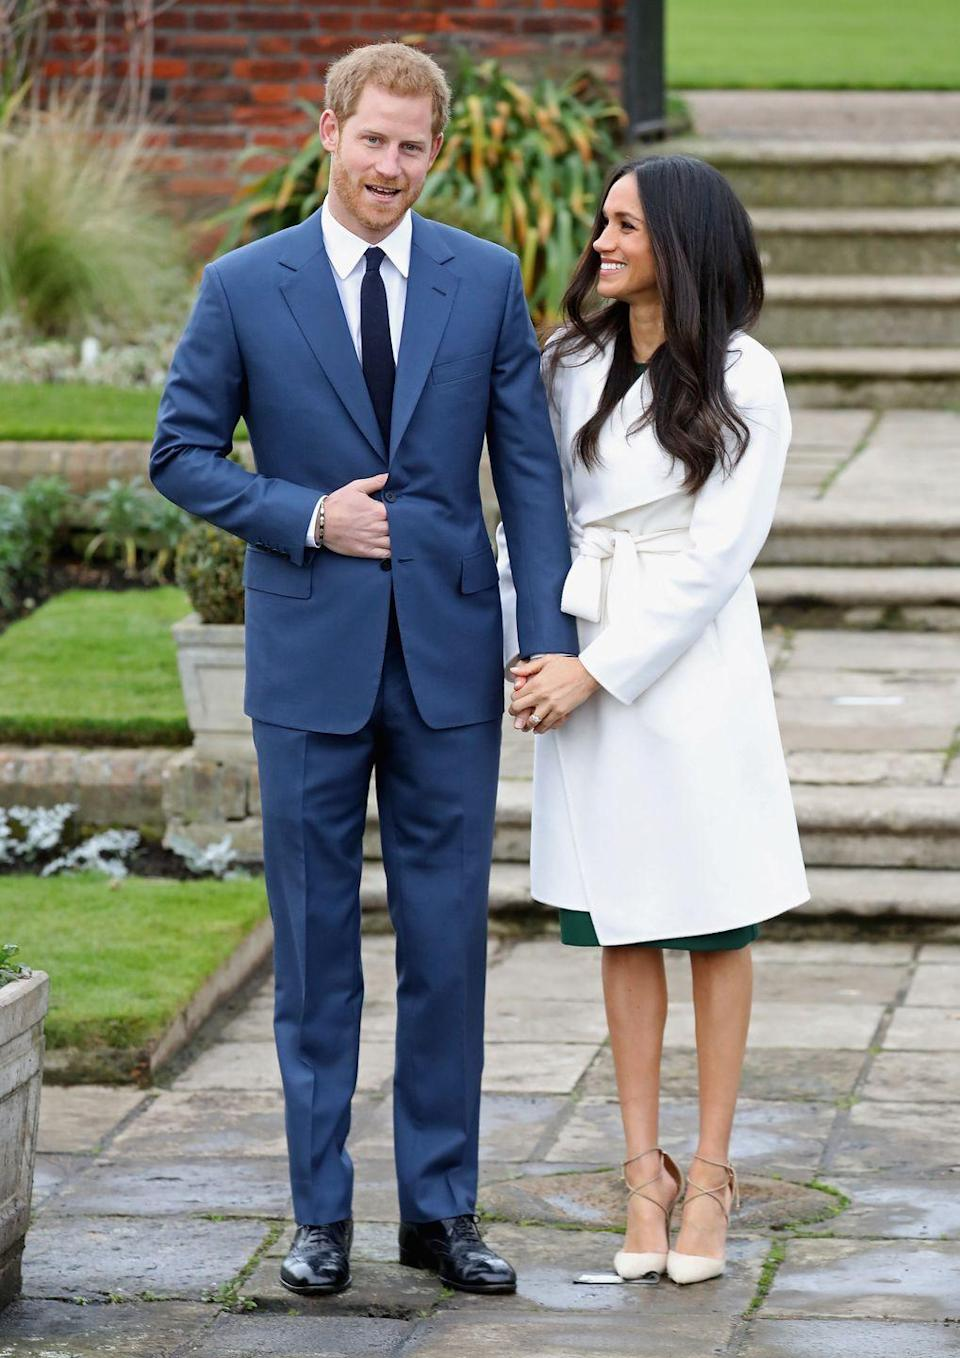 <p>In November 2017 Meghan Markle broke the internet when it was announced she was to marry Prince Harry in London. To publicly announce their union, she wore a white coat by Toronto-based label Line the Label layered, over a green dress by P.A.R.O.S.H and her favourite 'Matilde' heels by Italian footwear brand Aquazurra.</p>